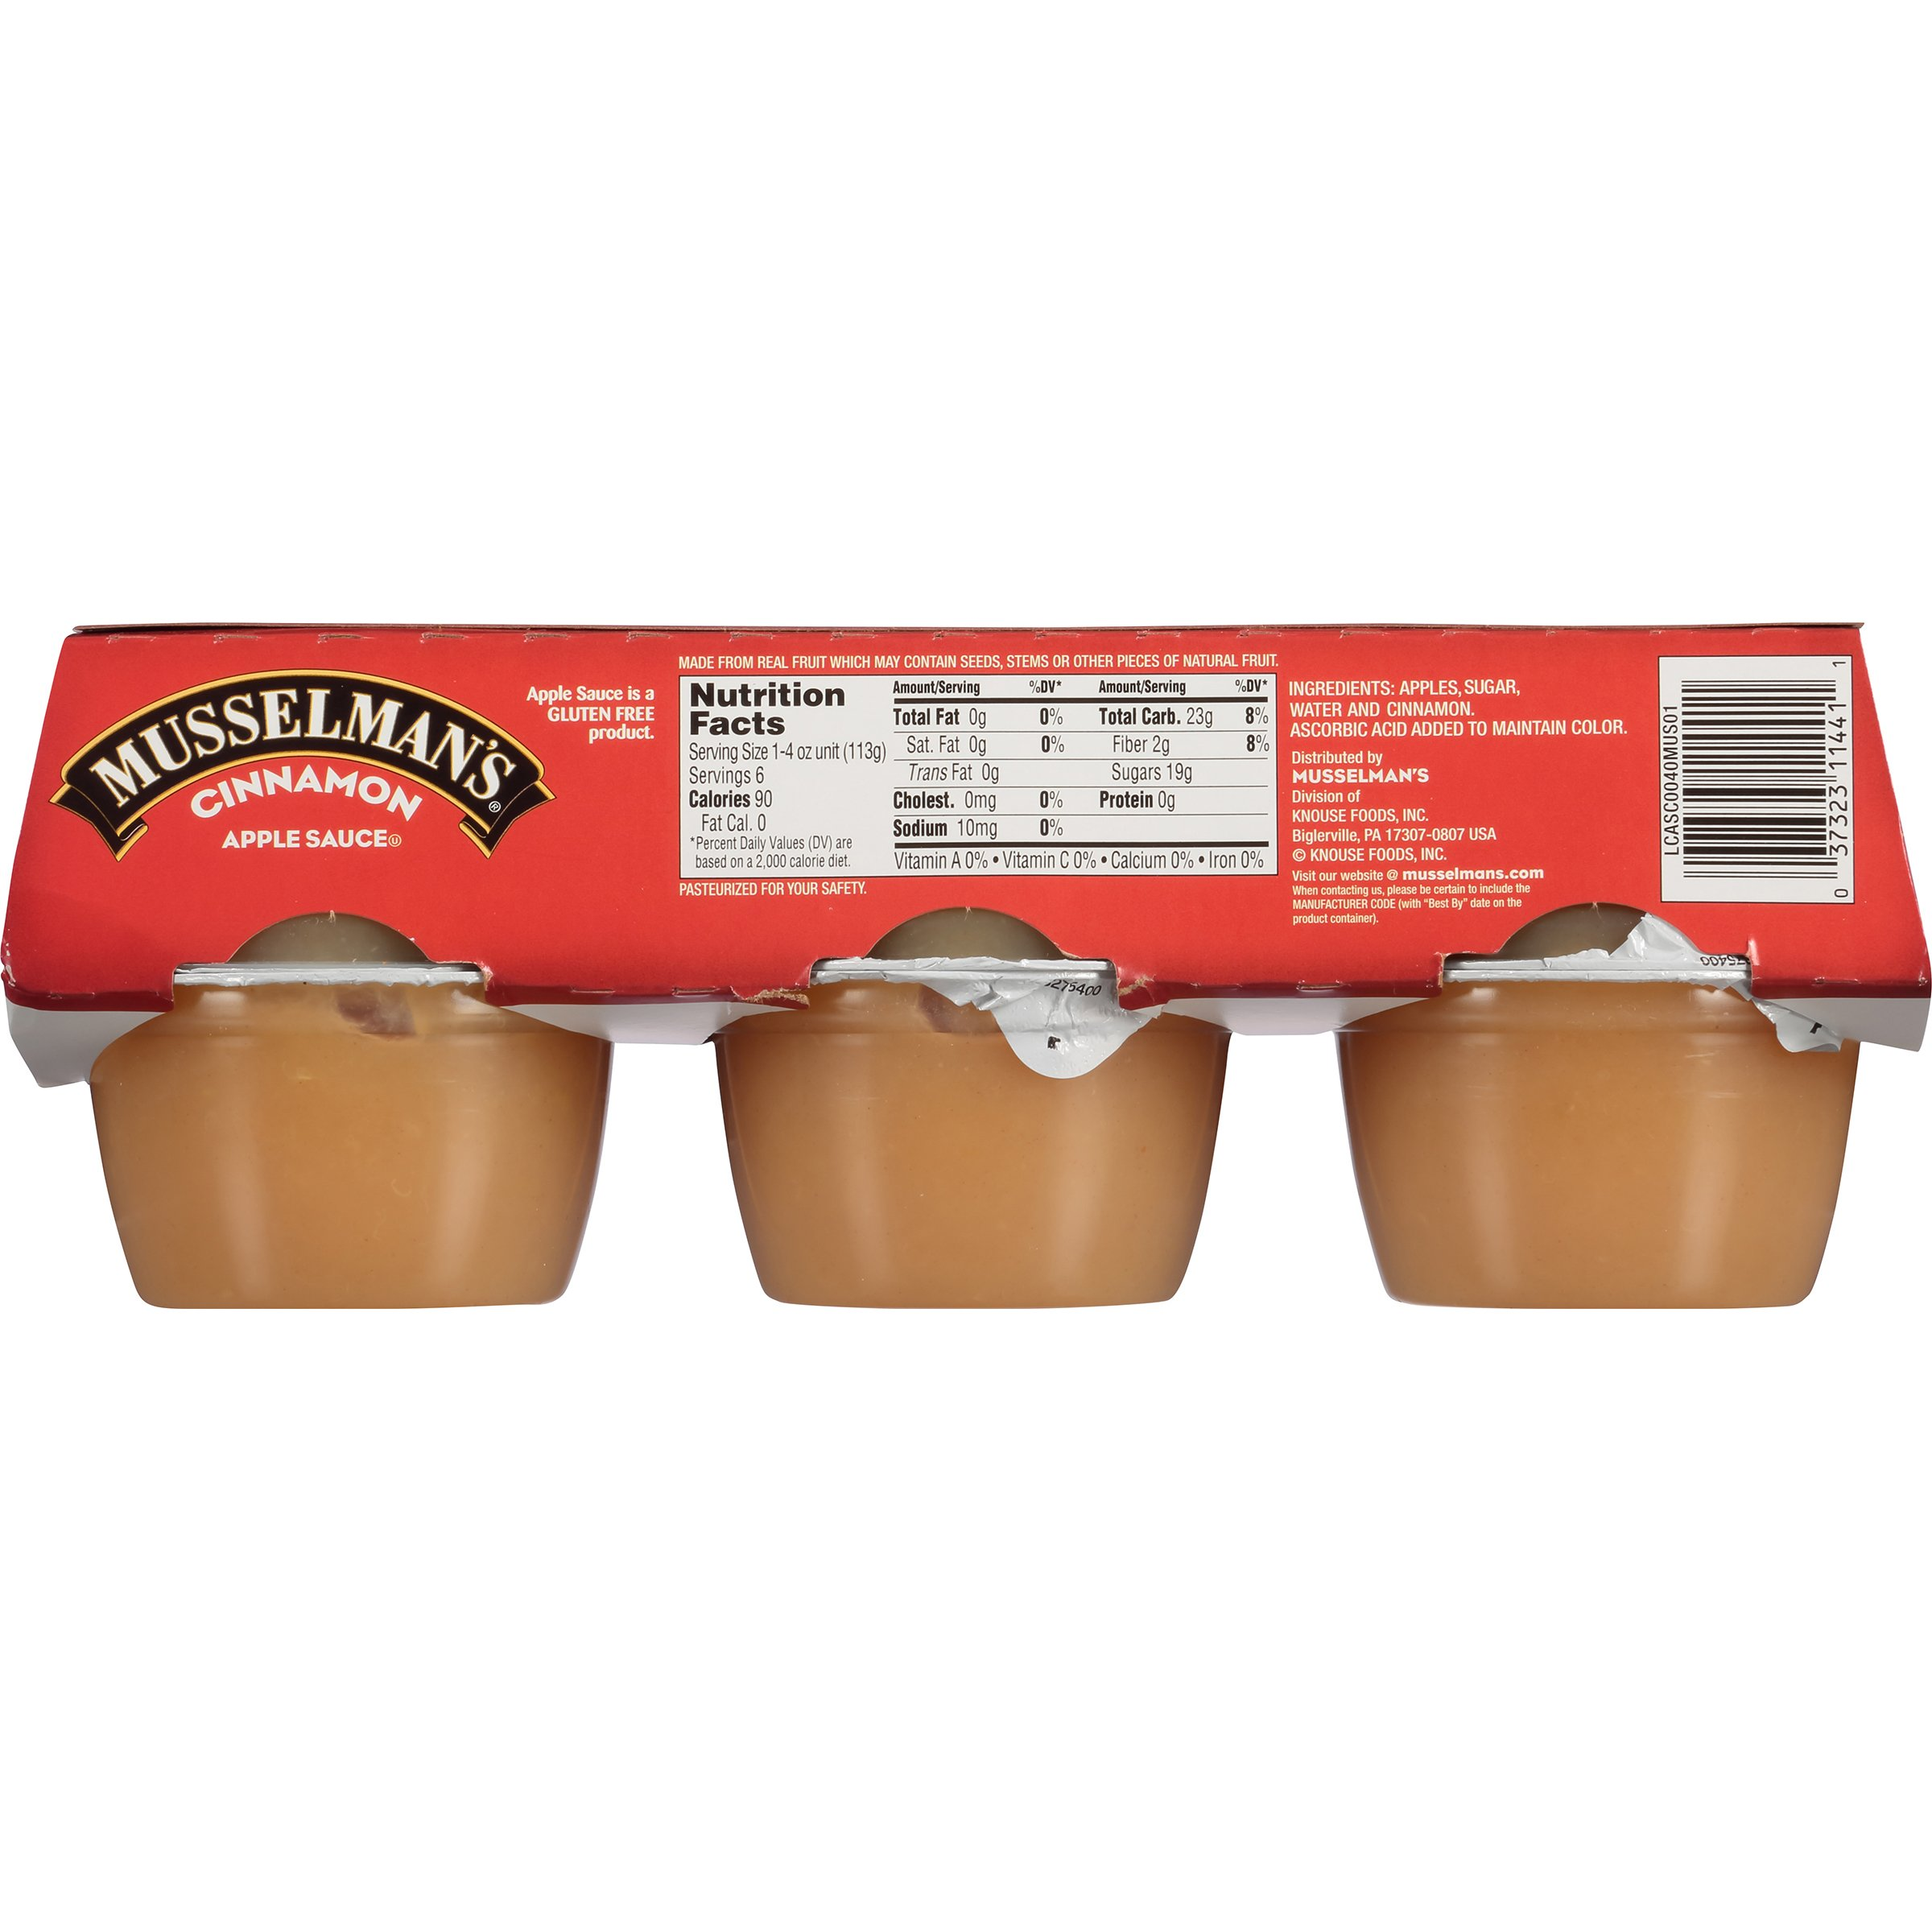 Musselman's Cinnamon Sweetened Applesauce, 4-Ounce Cups (Pack of 72) by Musselmans (Image #3)